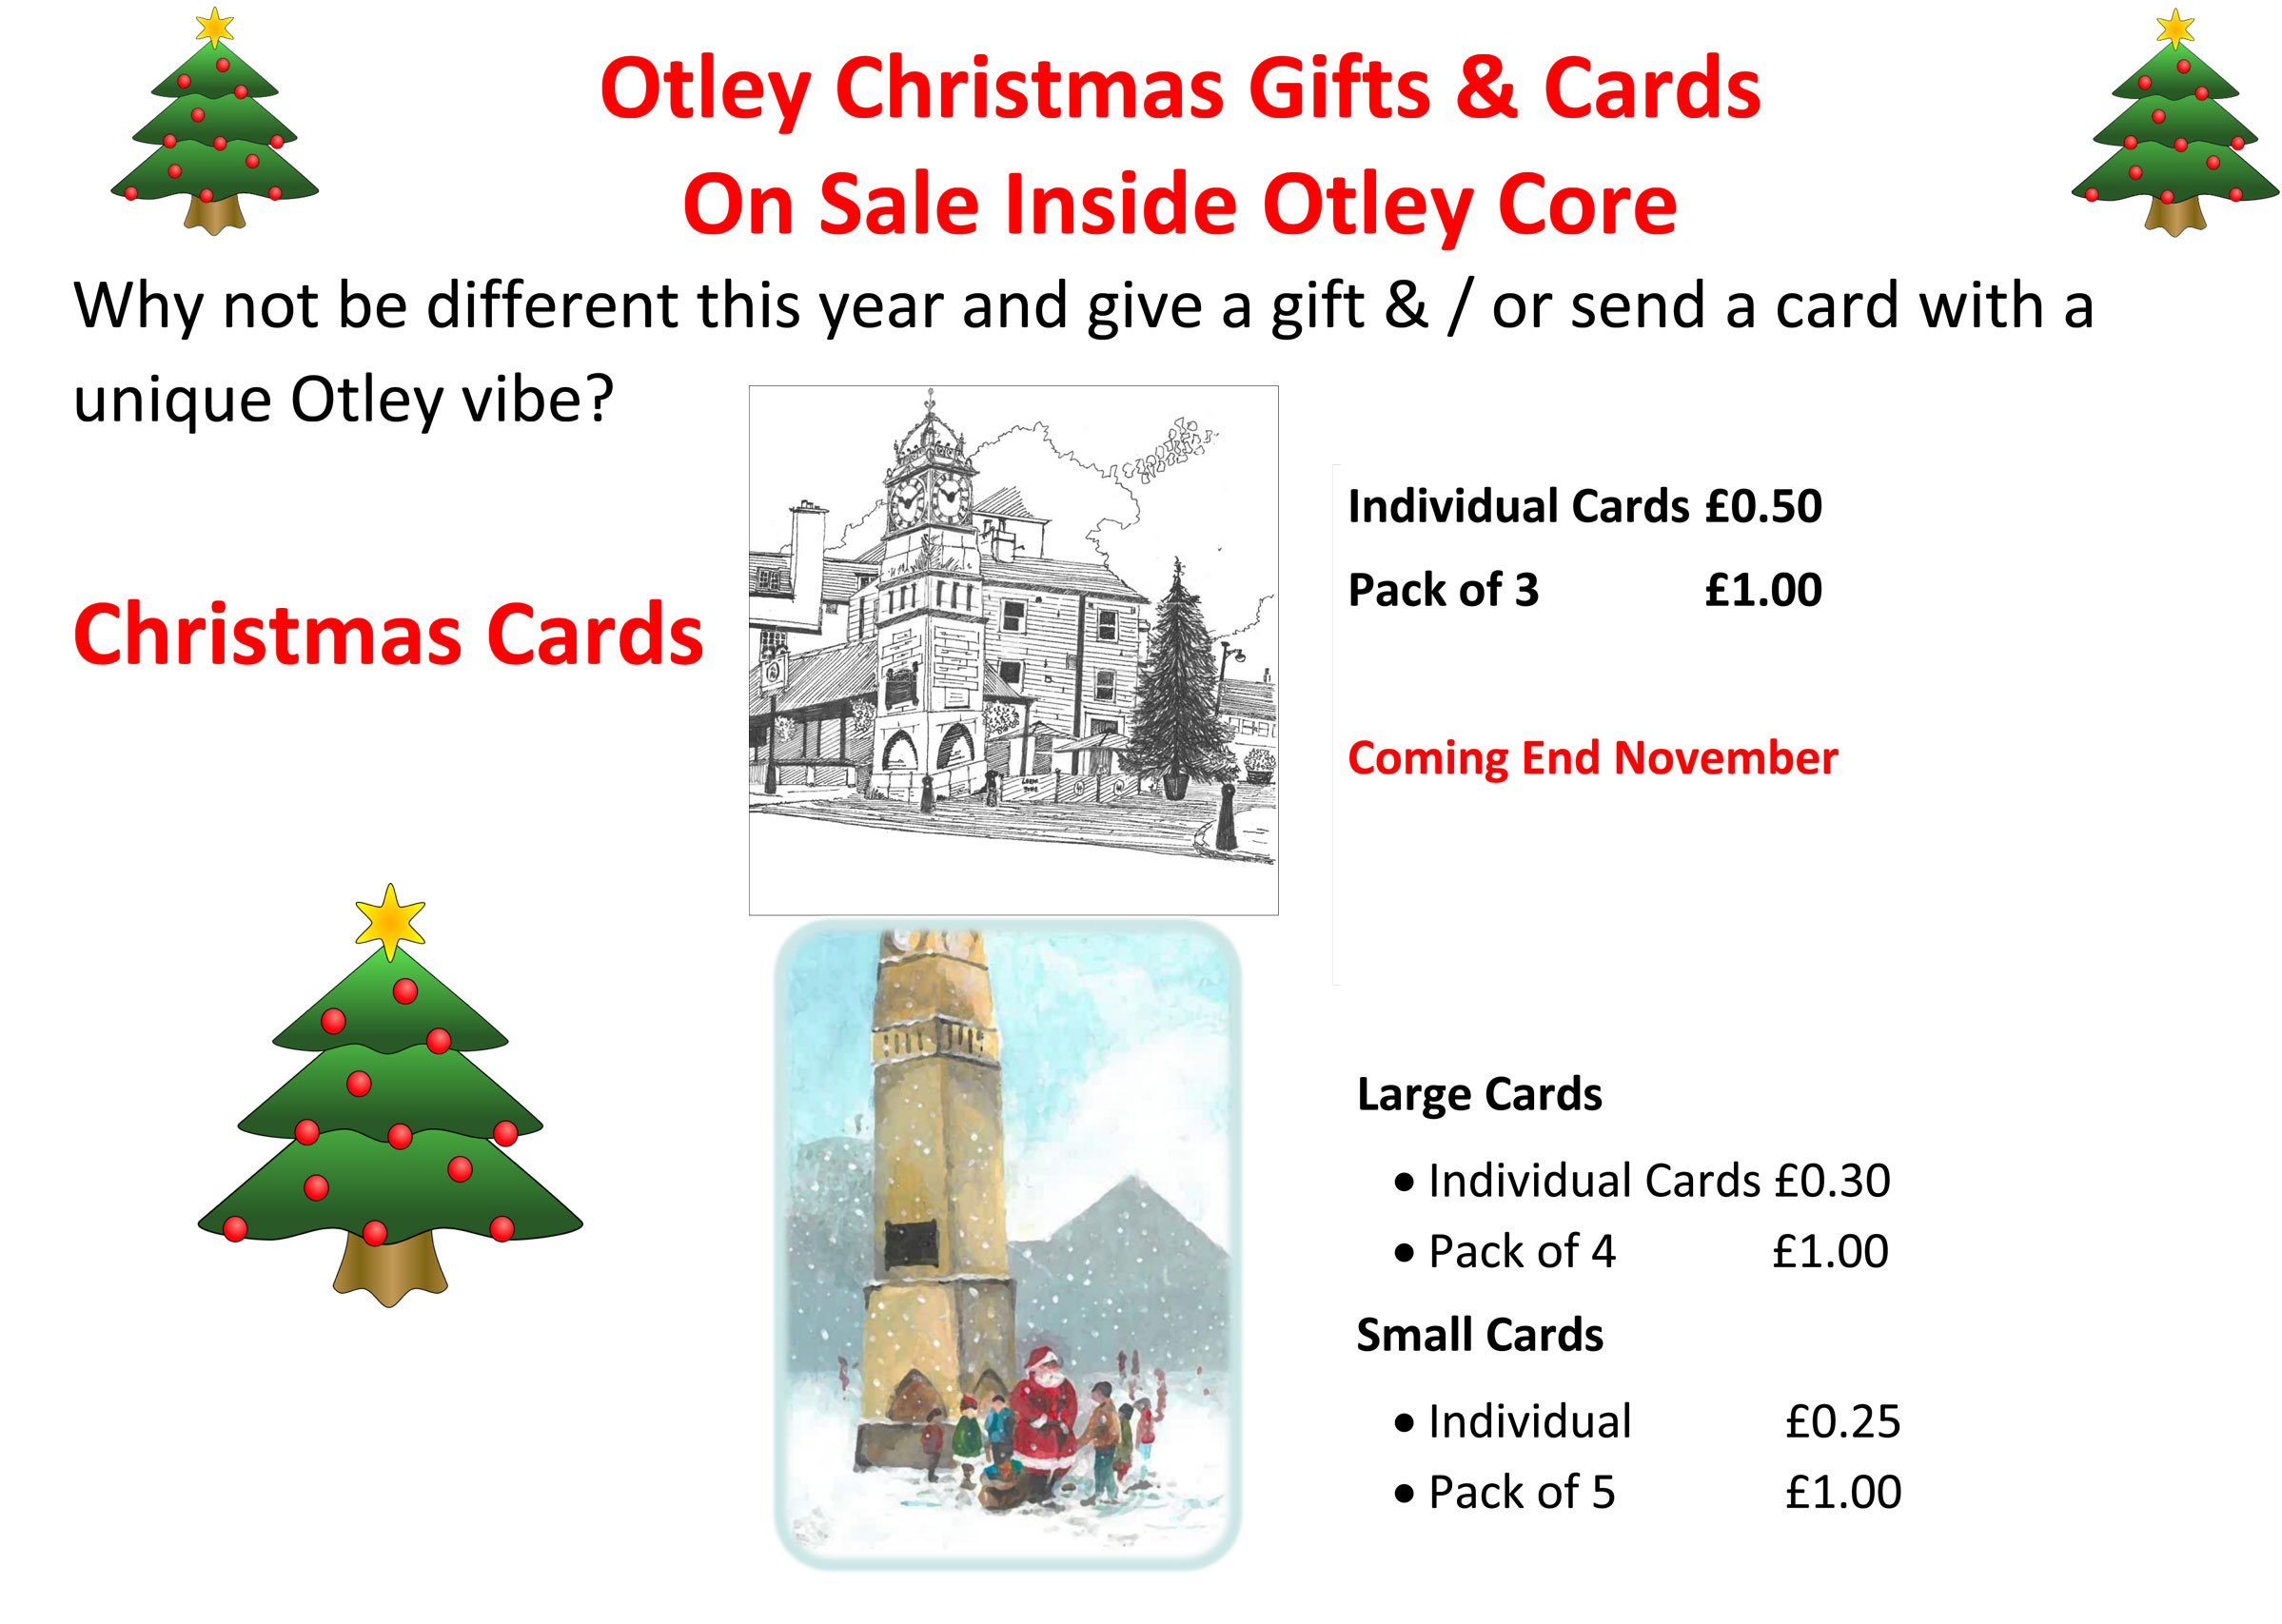 Otley Christmas Gifts & Cards Now on Sale at Otley Core | Otley Town ...